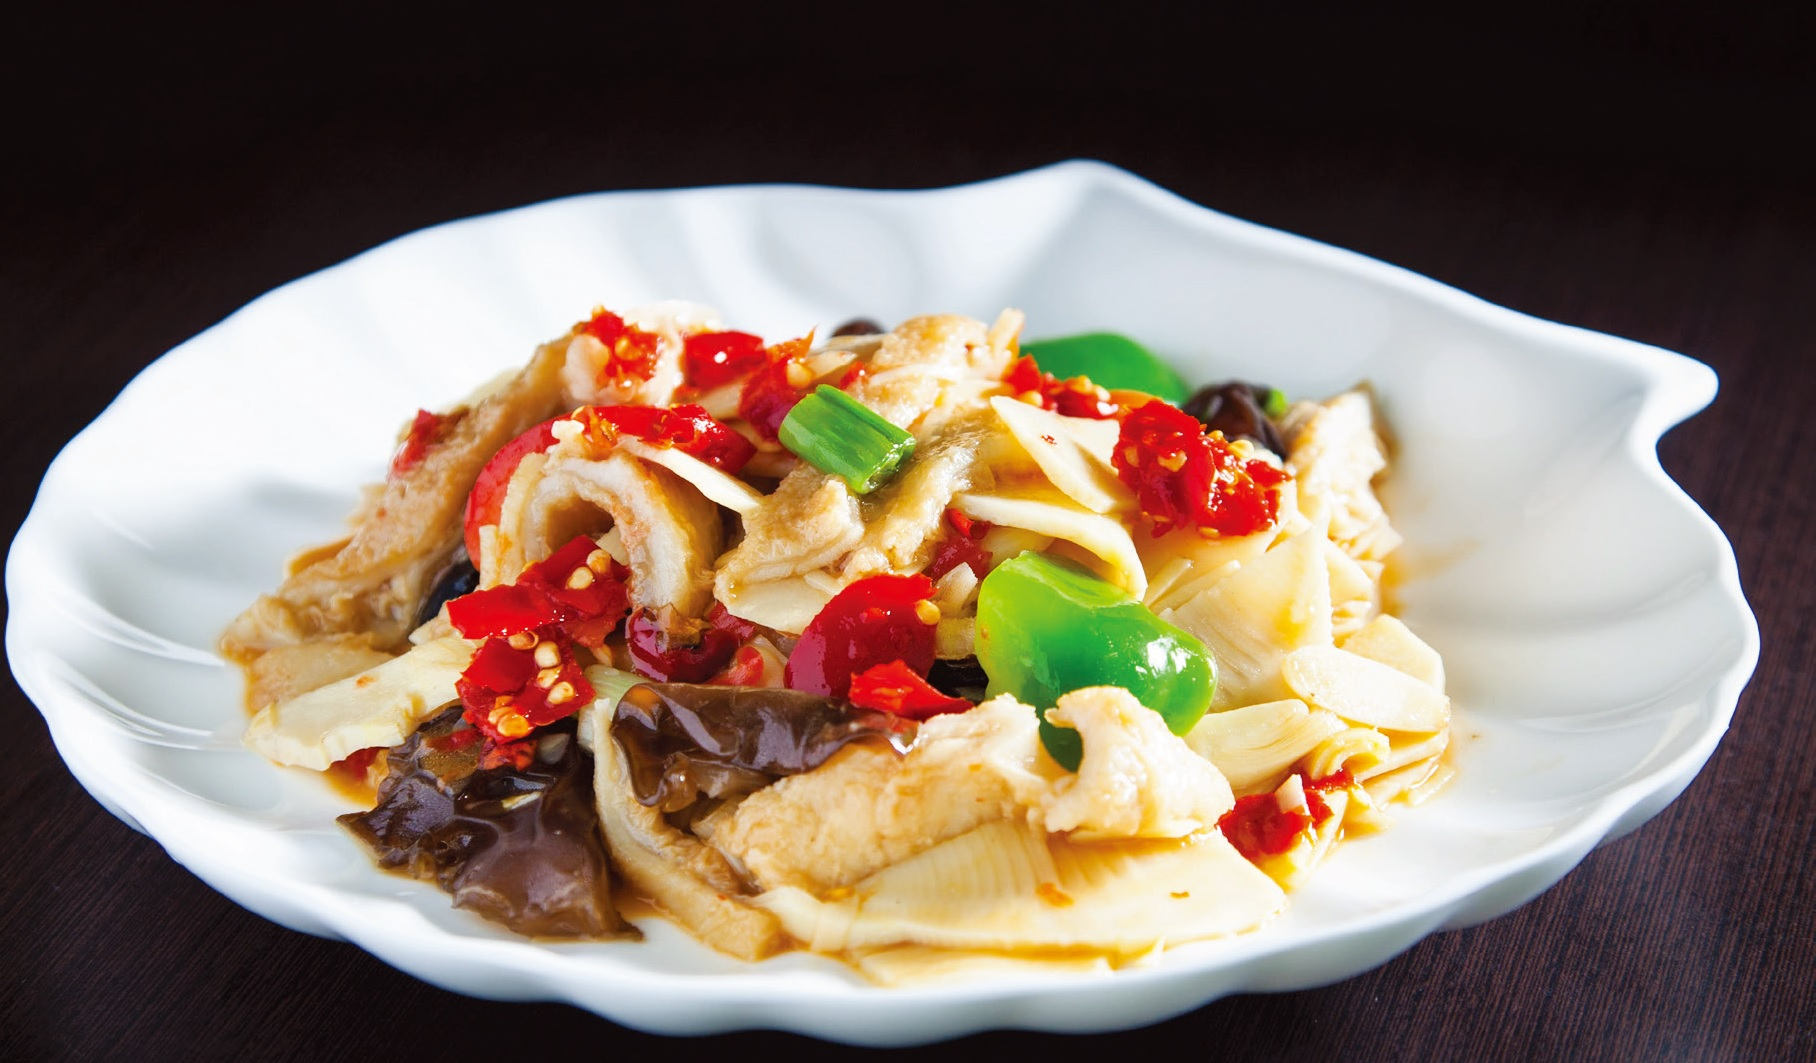 Stir fried ox tripe